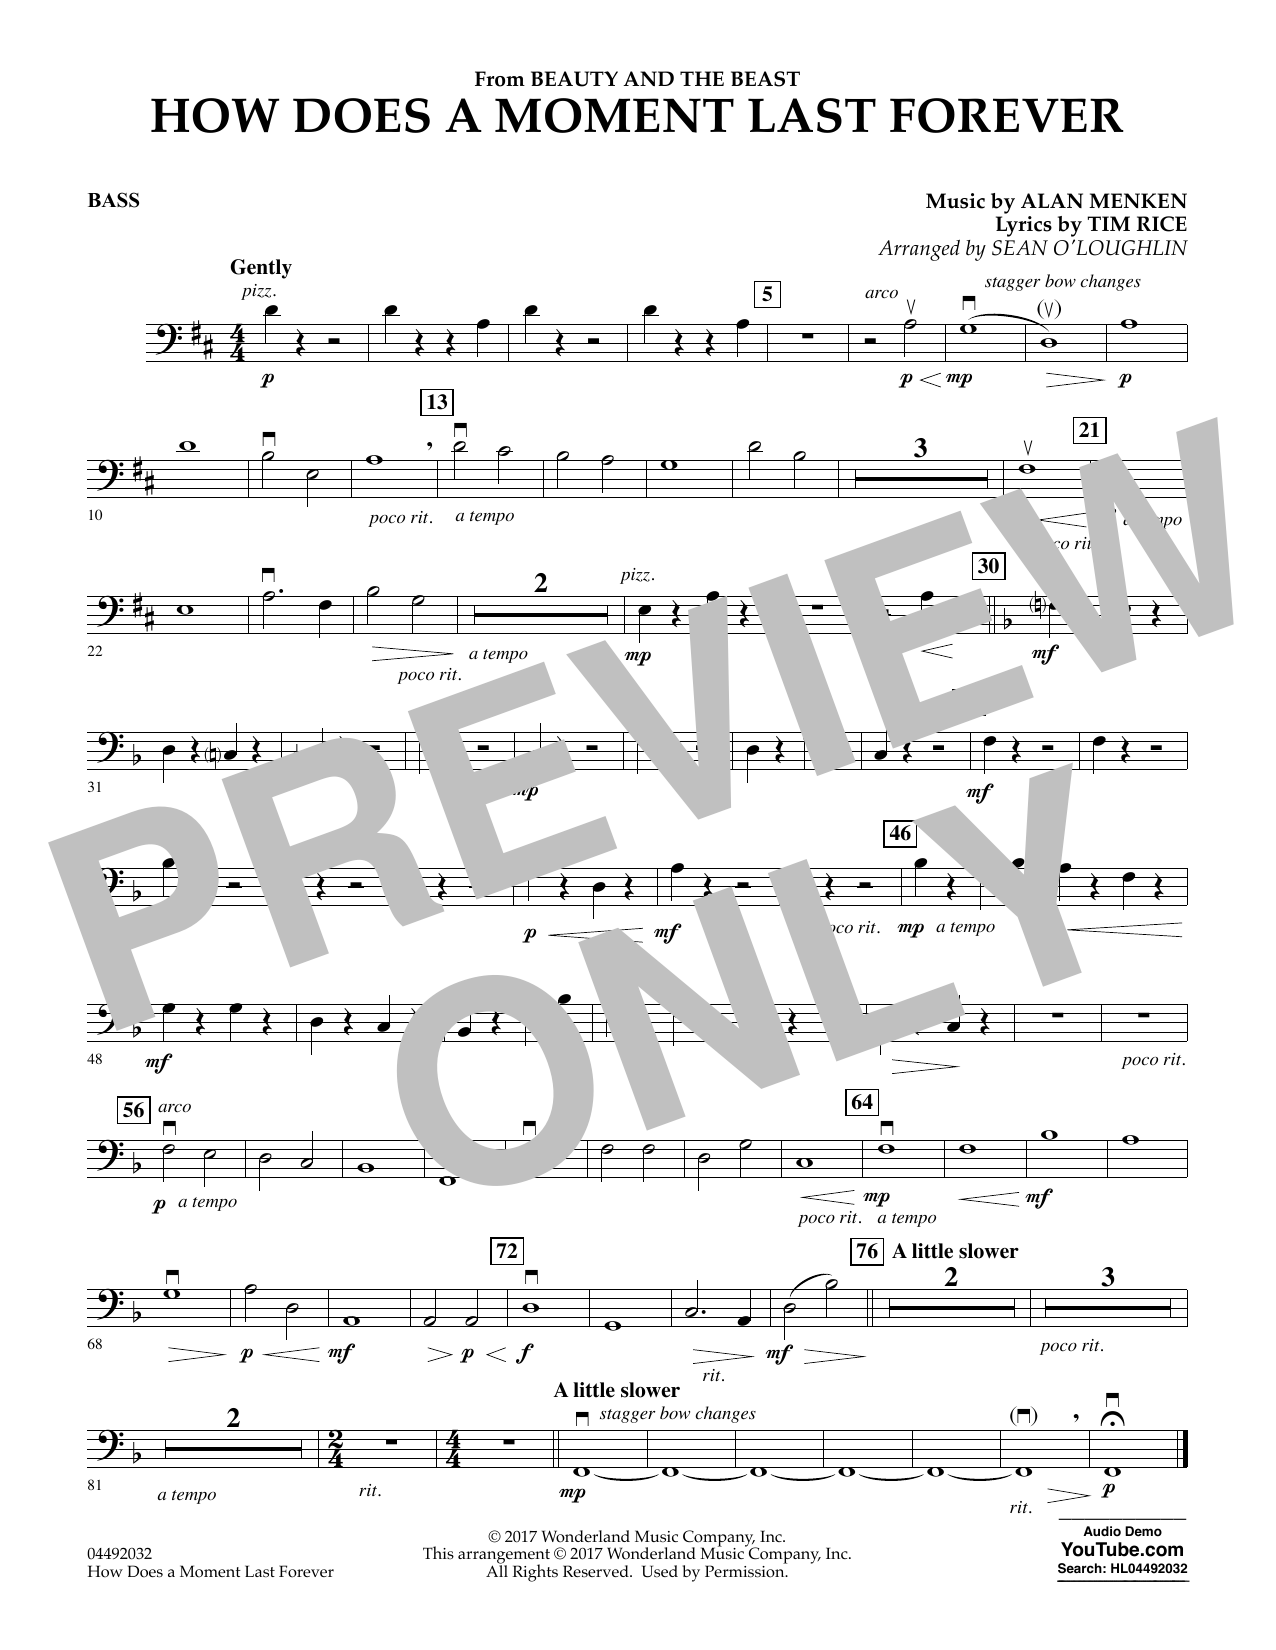 How Does a Moment Last Forever (from Beauty and the Beast) - Bass (Orchestra)